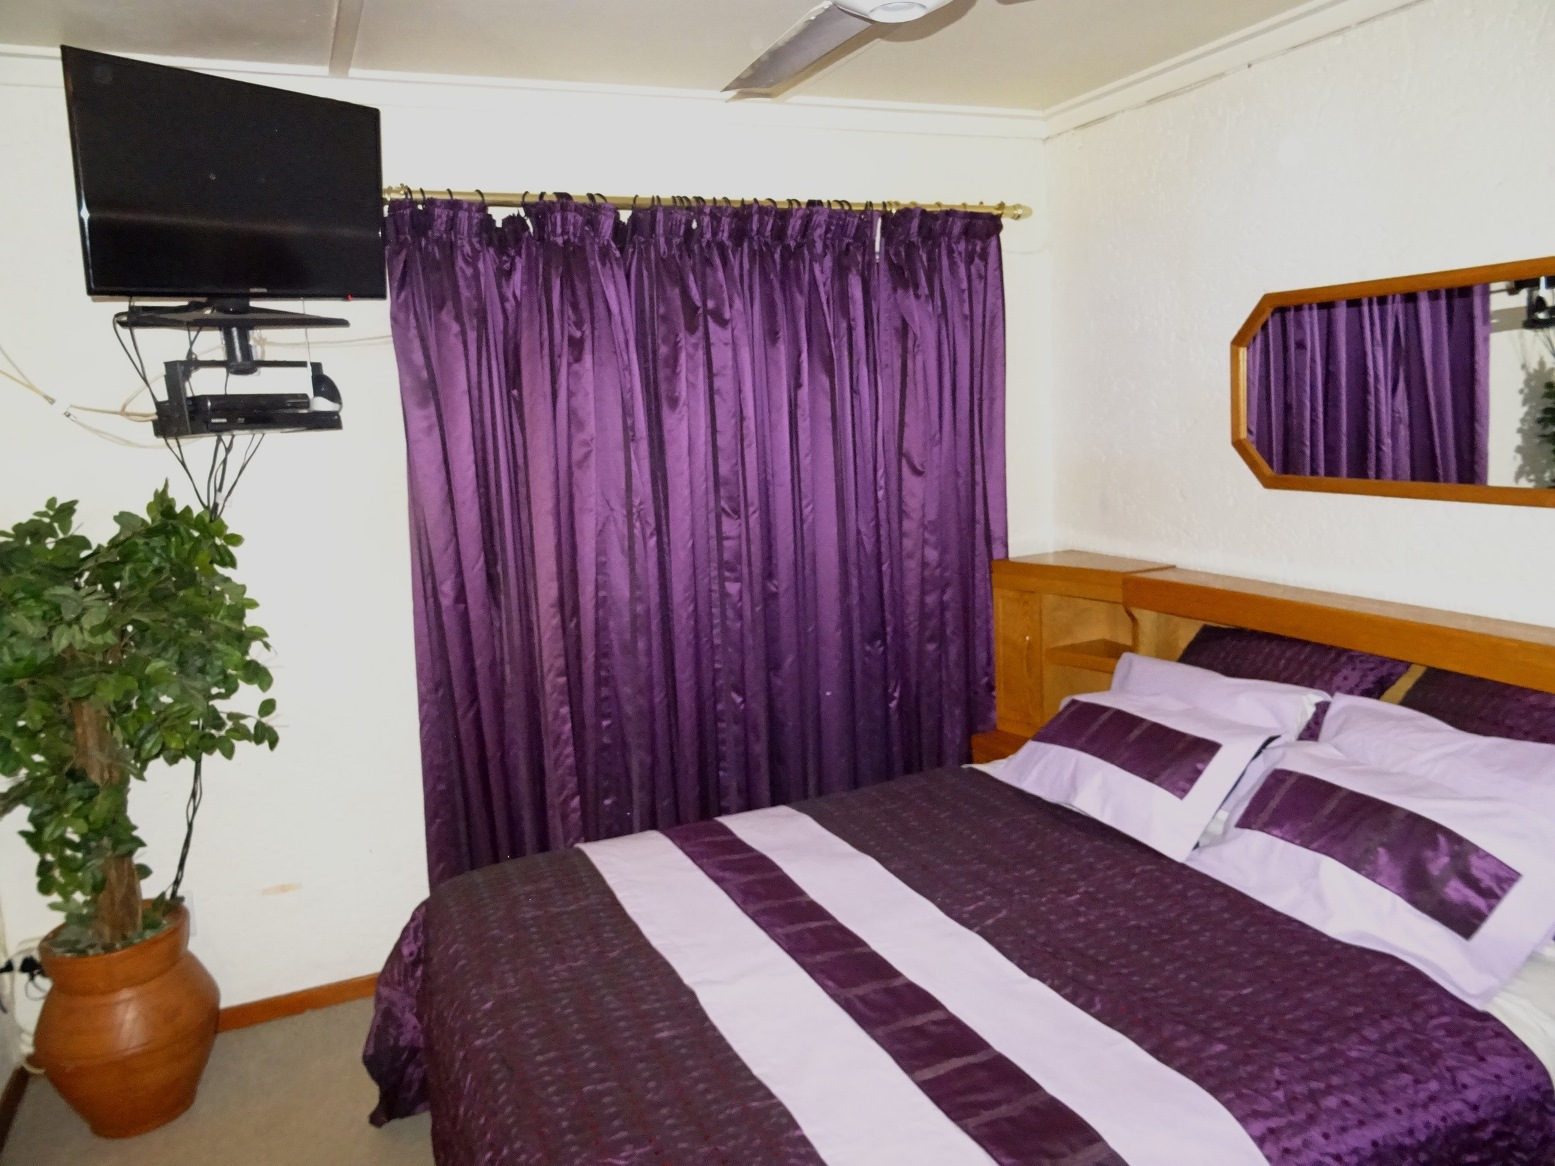 Queen size bed & headboard in purple main en-suite bedroom - Ileven Heaven